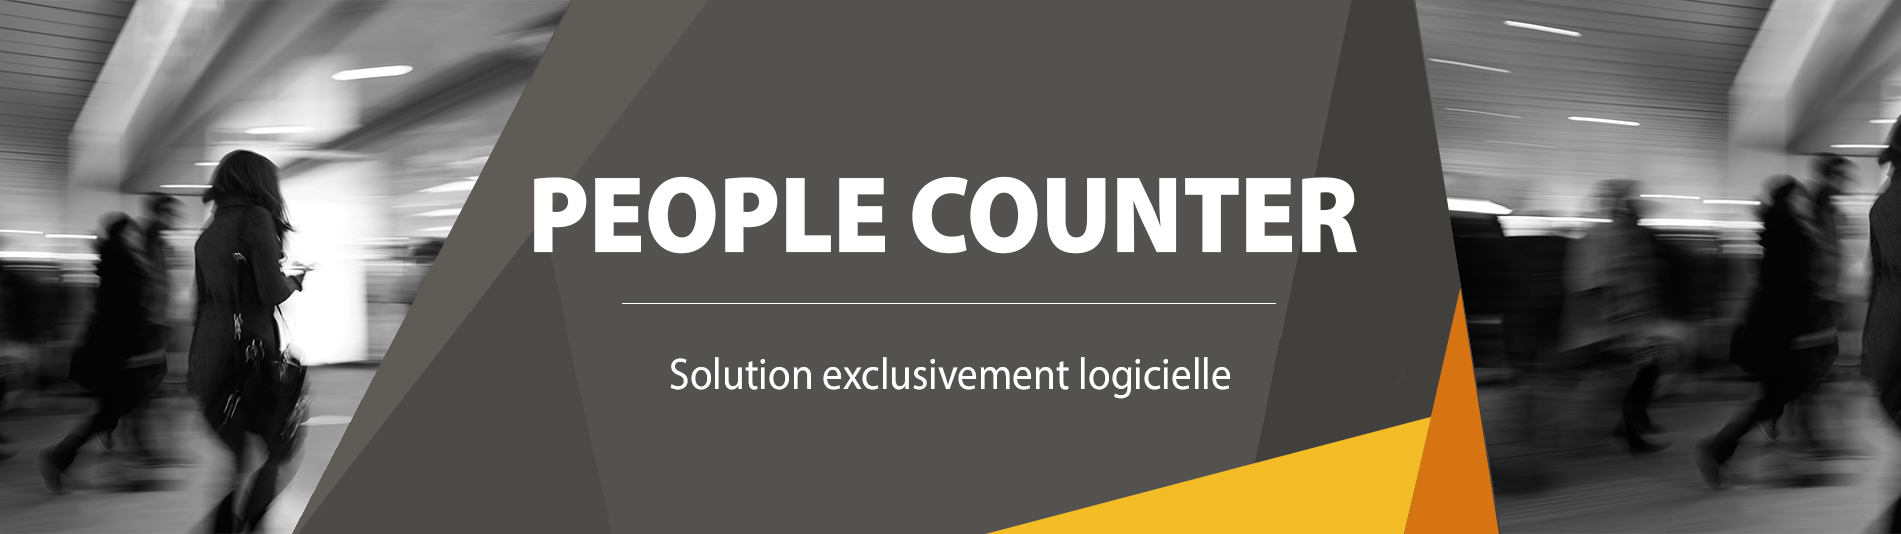 FR - People Counter